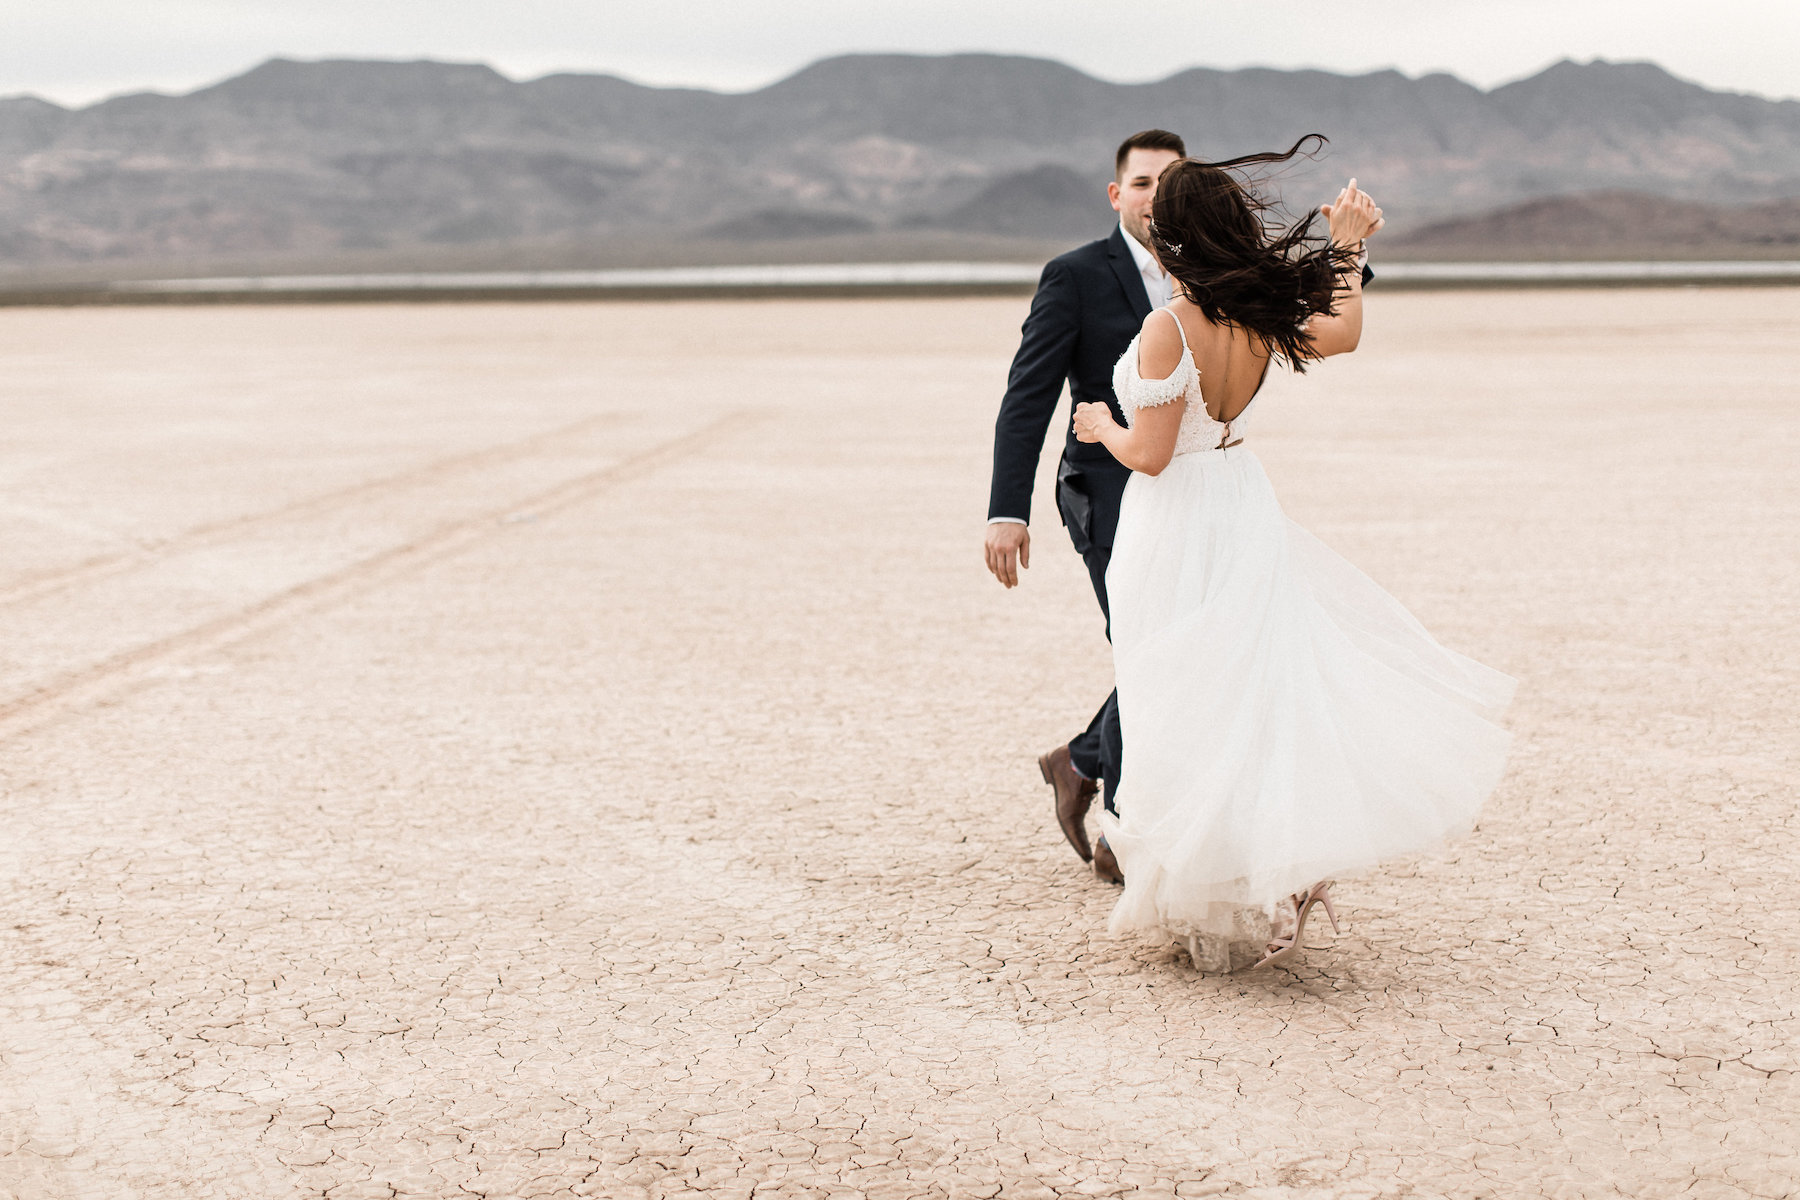 las vegas dry lake bed florapop wedding00036.jpg